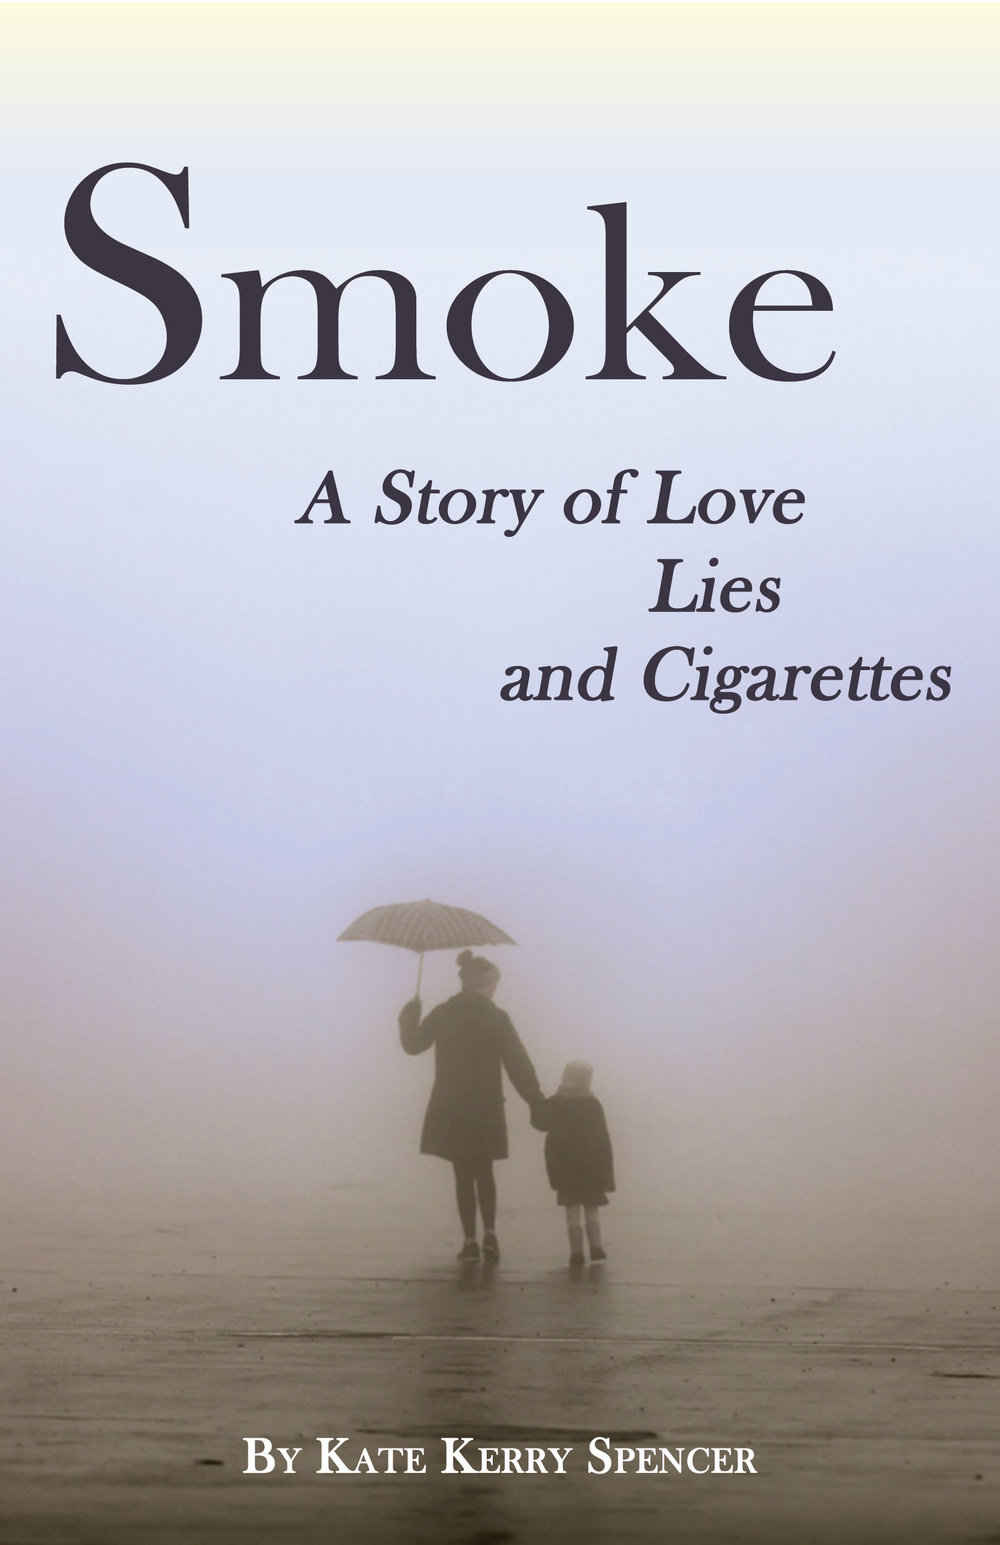 Smoke: A Story of Love, Lies and Cigarettes  by Kate Kerry Spencer